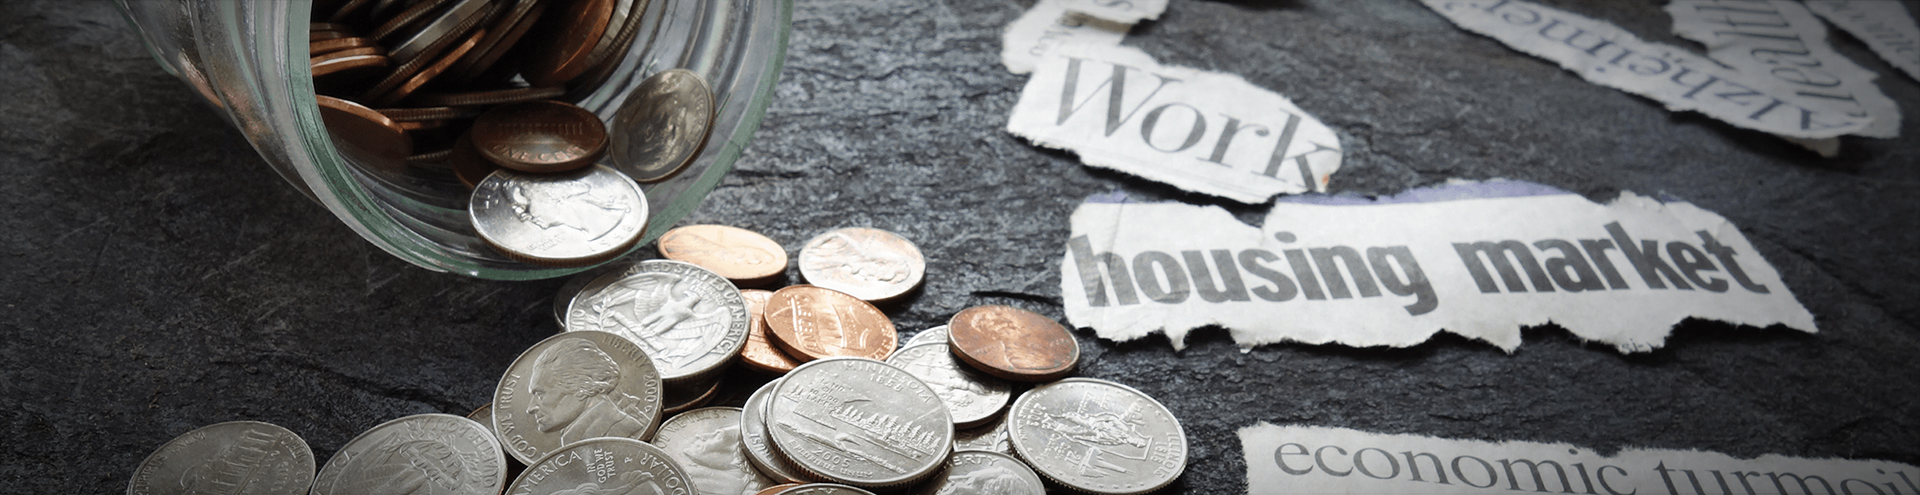 How to Recover Money from the Market?